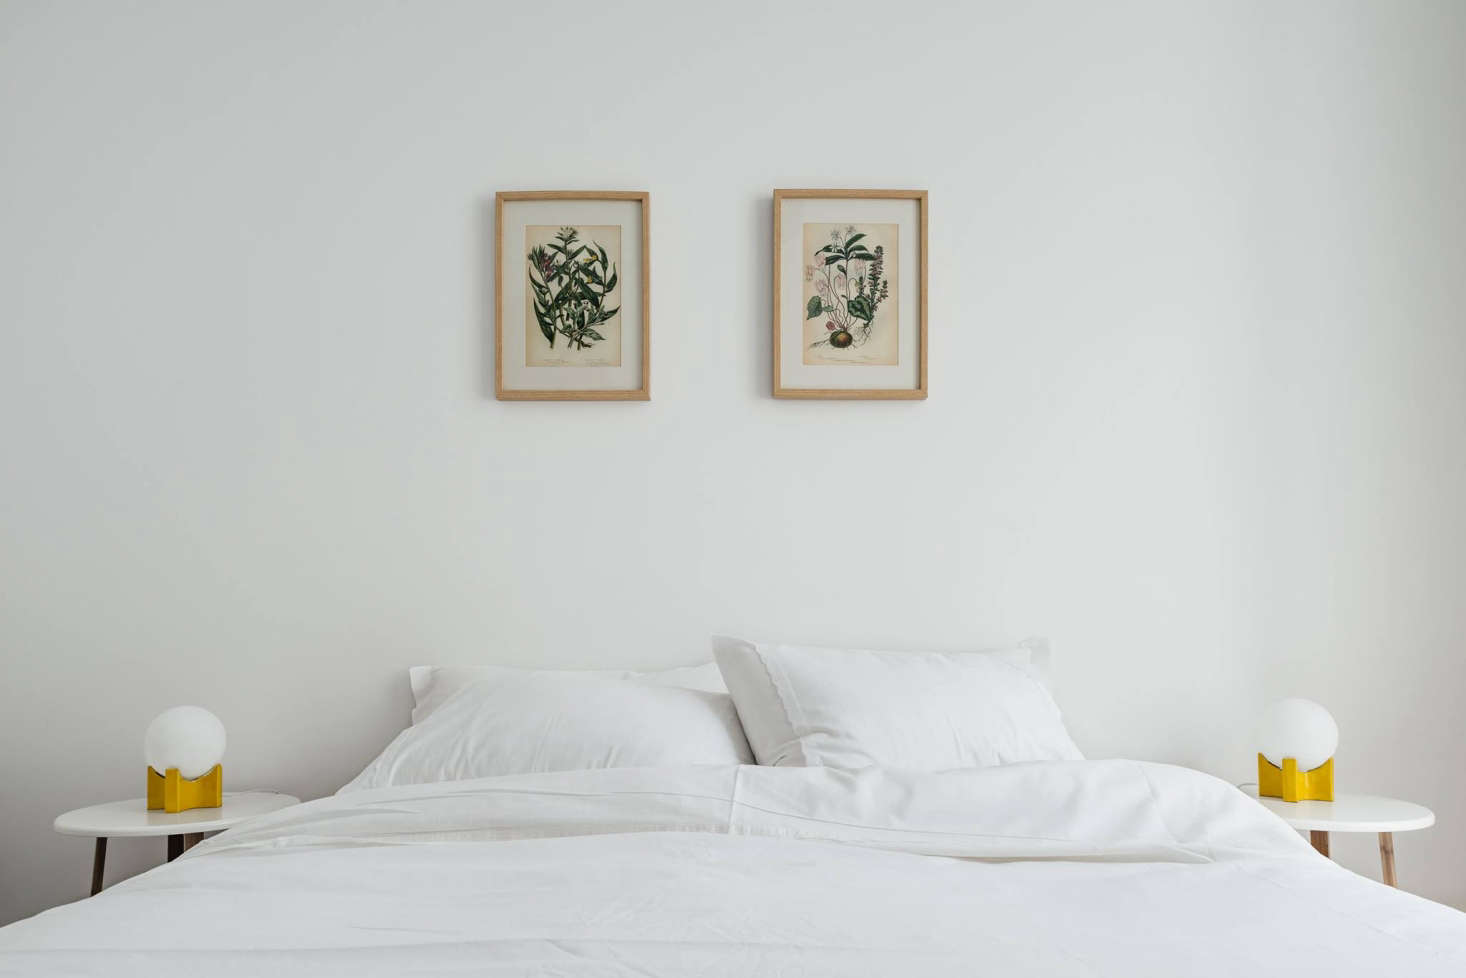 The Lisboans has  apartment-style guest suites. Shown here: the Comfort One-Bedroom, vintage botanical prints included. (For a similar look, seeSteal This Look: A Portuguese Bedroom with Vintage Charm.)